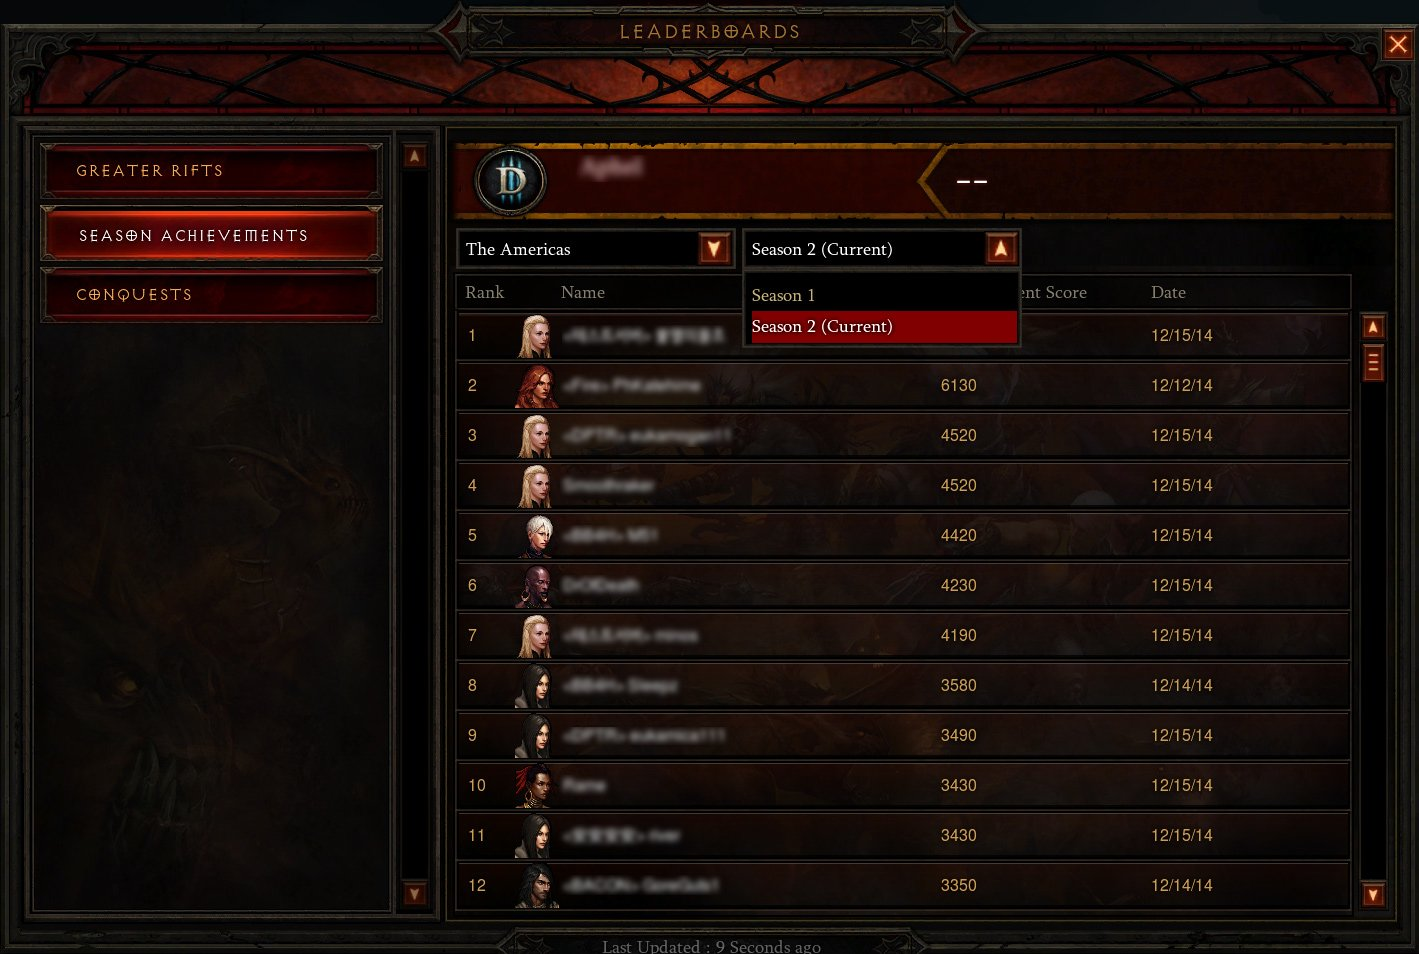 diablo-season-14-old-and-new-leaderboards